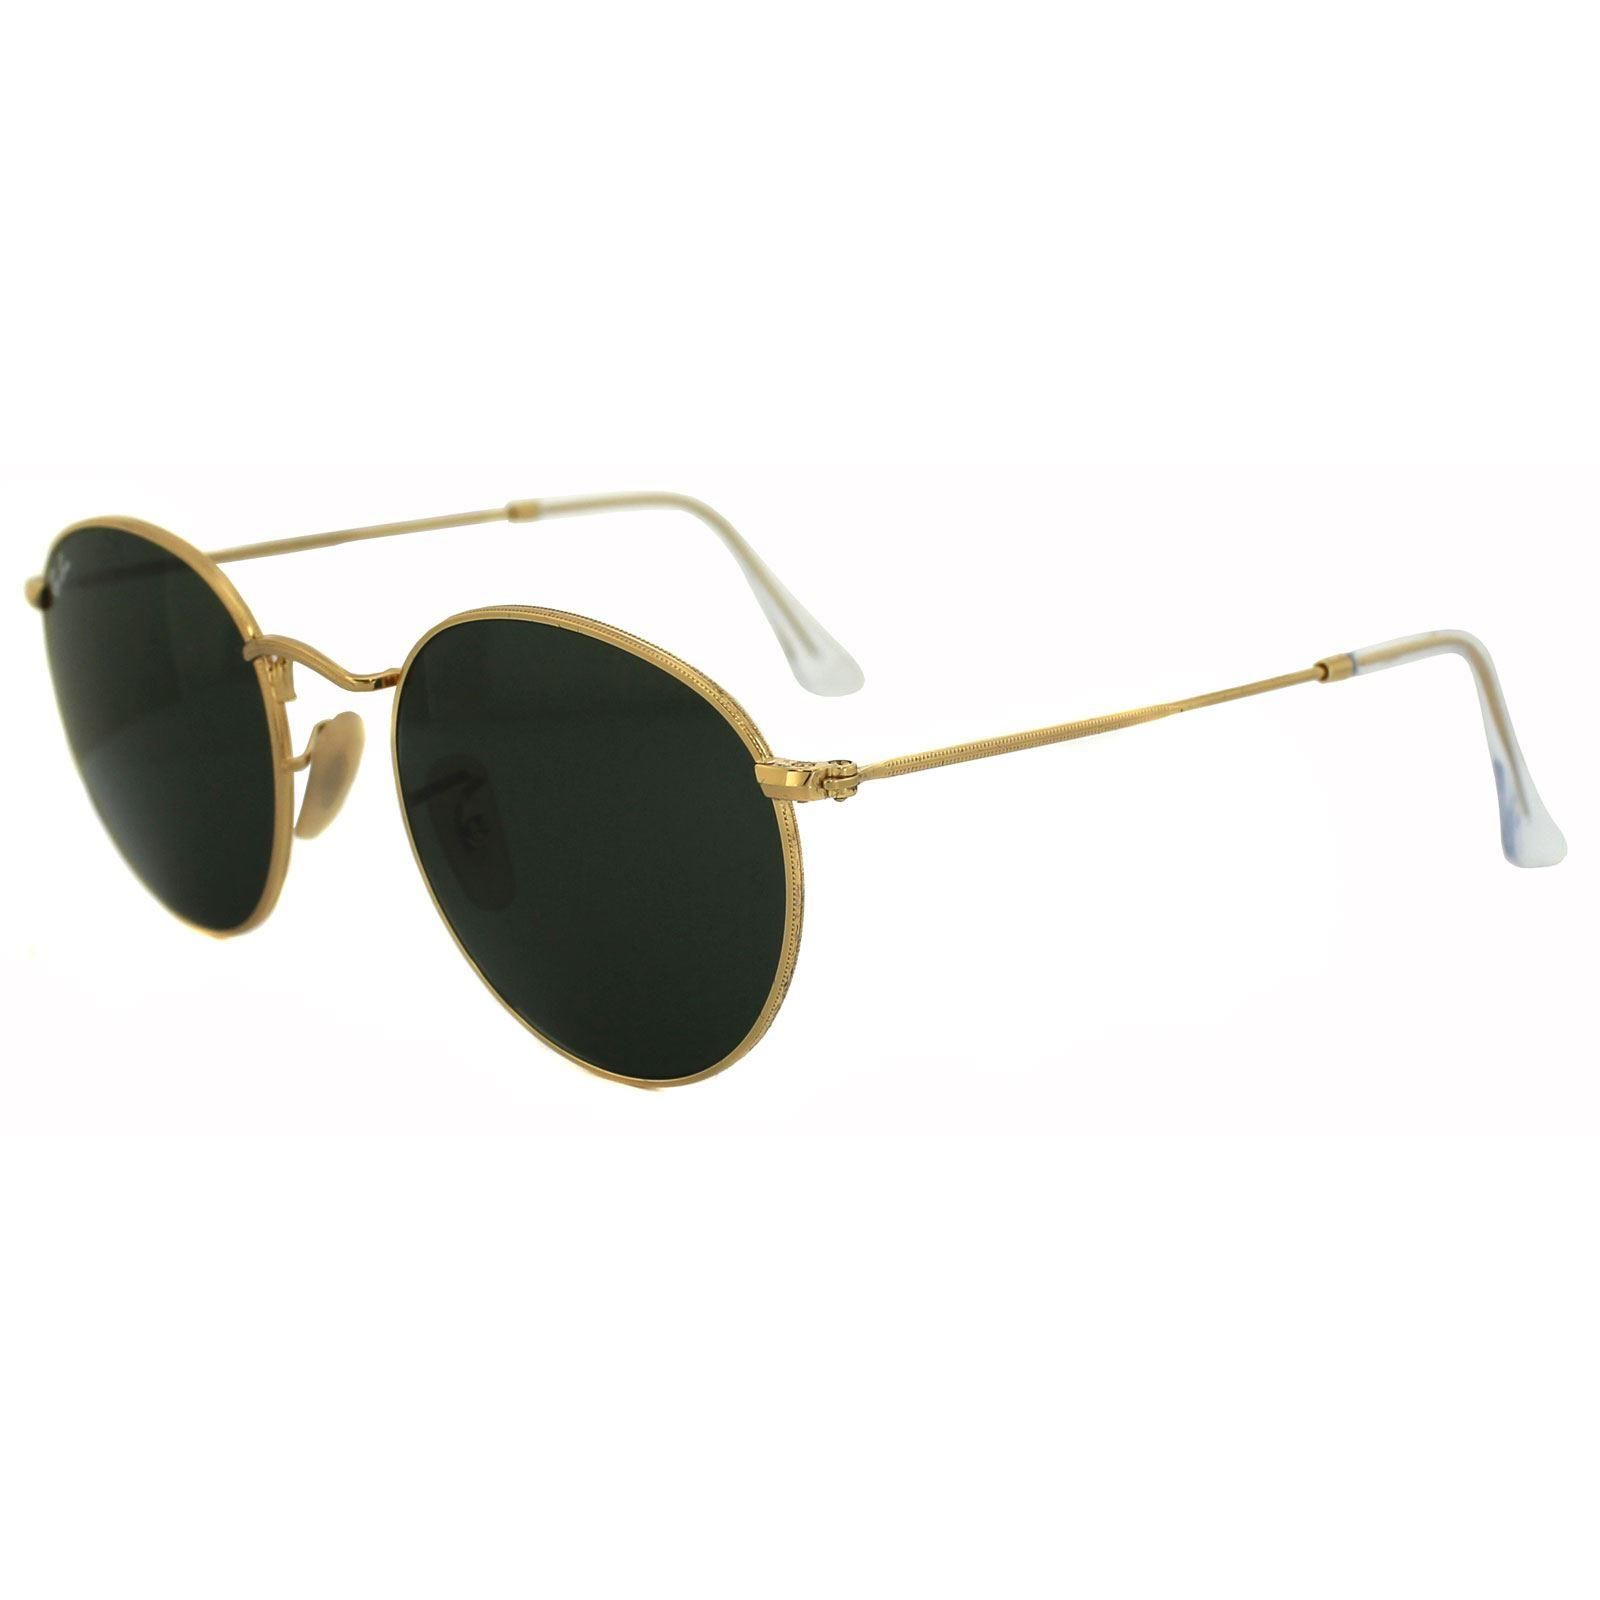 Ray-Ban Sunglasses Round Metal 3447 001 Gold Green 47mm